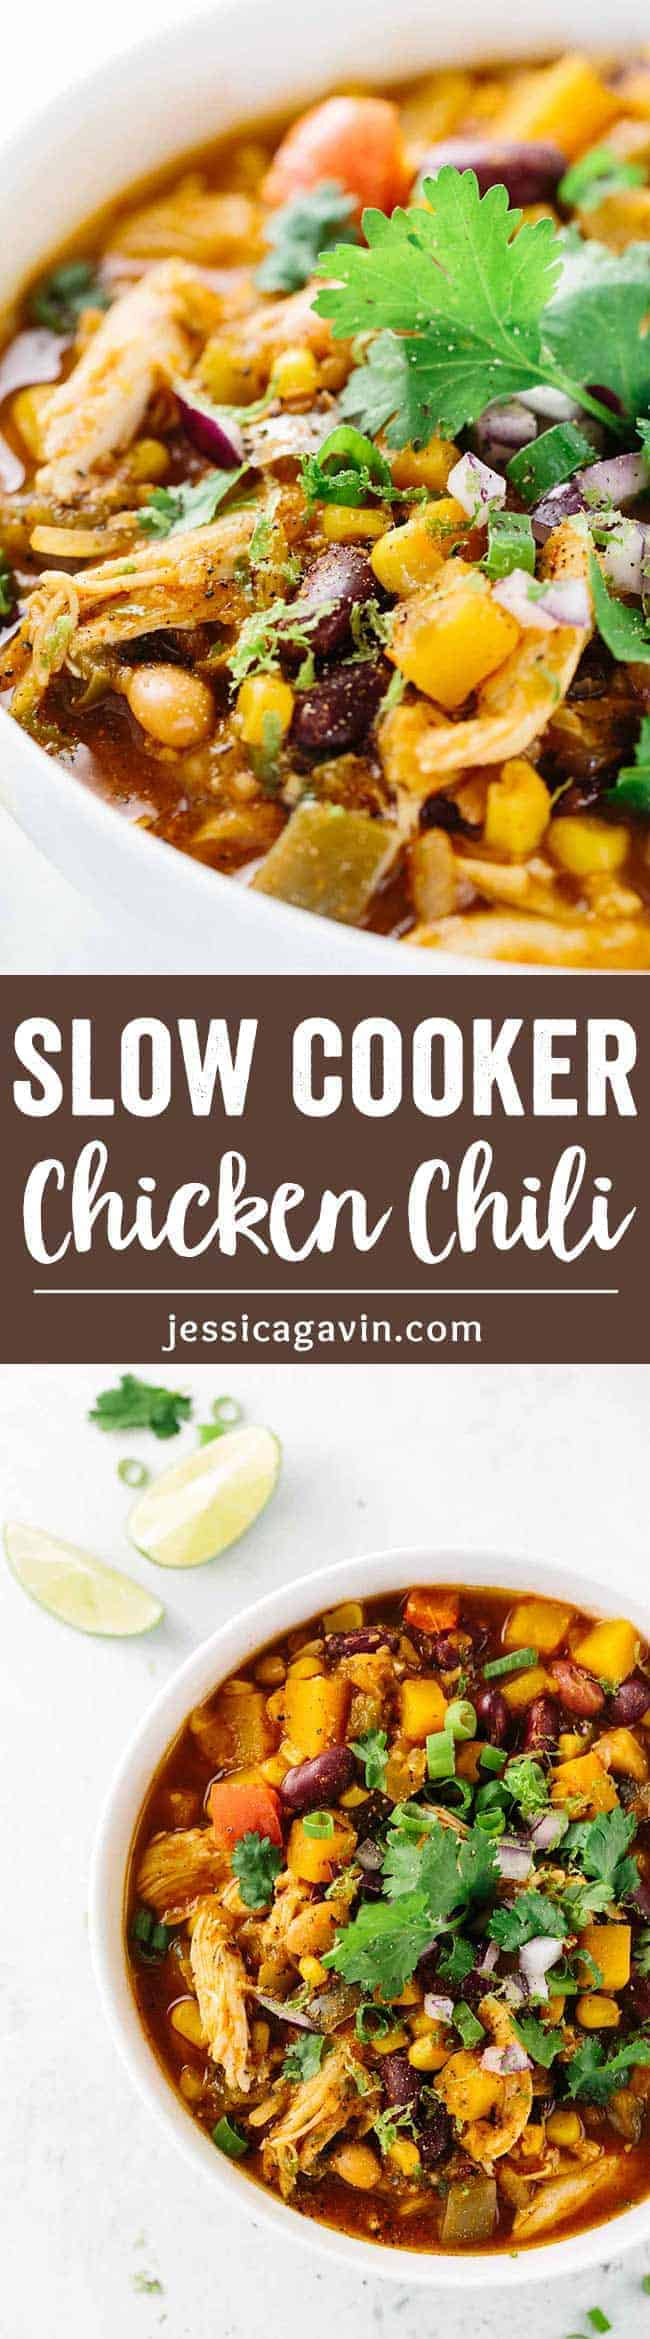 Slow Cooker Chicken Chili & Jalapeño Cornbread - A wholesome recipe made with ease! Enjoy this satisfying spicy chili with a slice of savory cornbread.